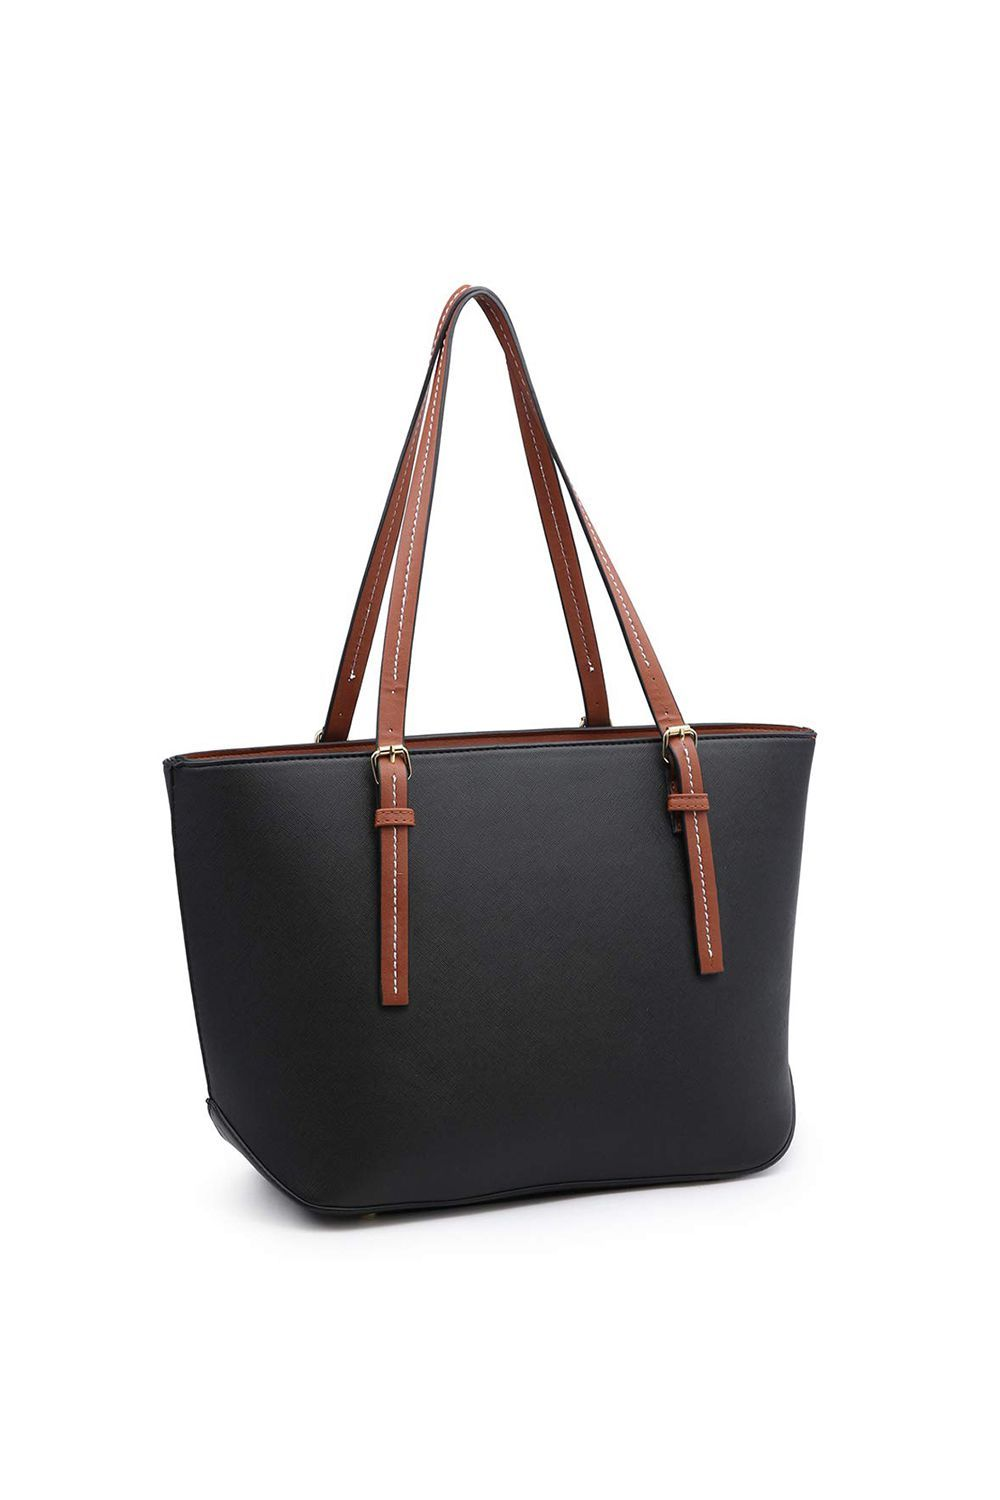 Best Designer Dupe Laptop Tote Bag XB XIBANG $32.99 SHOP IT This tote bag comes in five different colors, so if you're not looking for a basic neutral, try the burgundy color. It's still versatile but will add that rich hue to warm up your outfits.